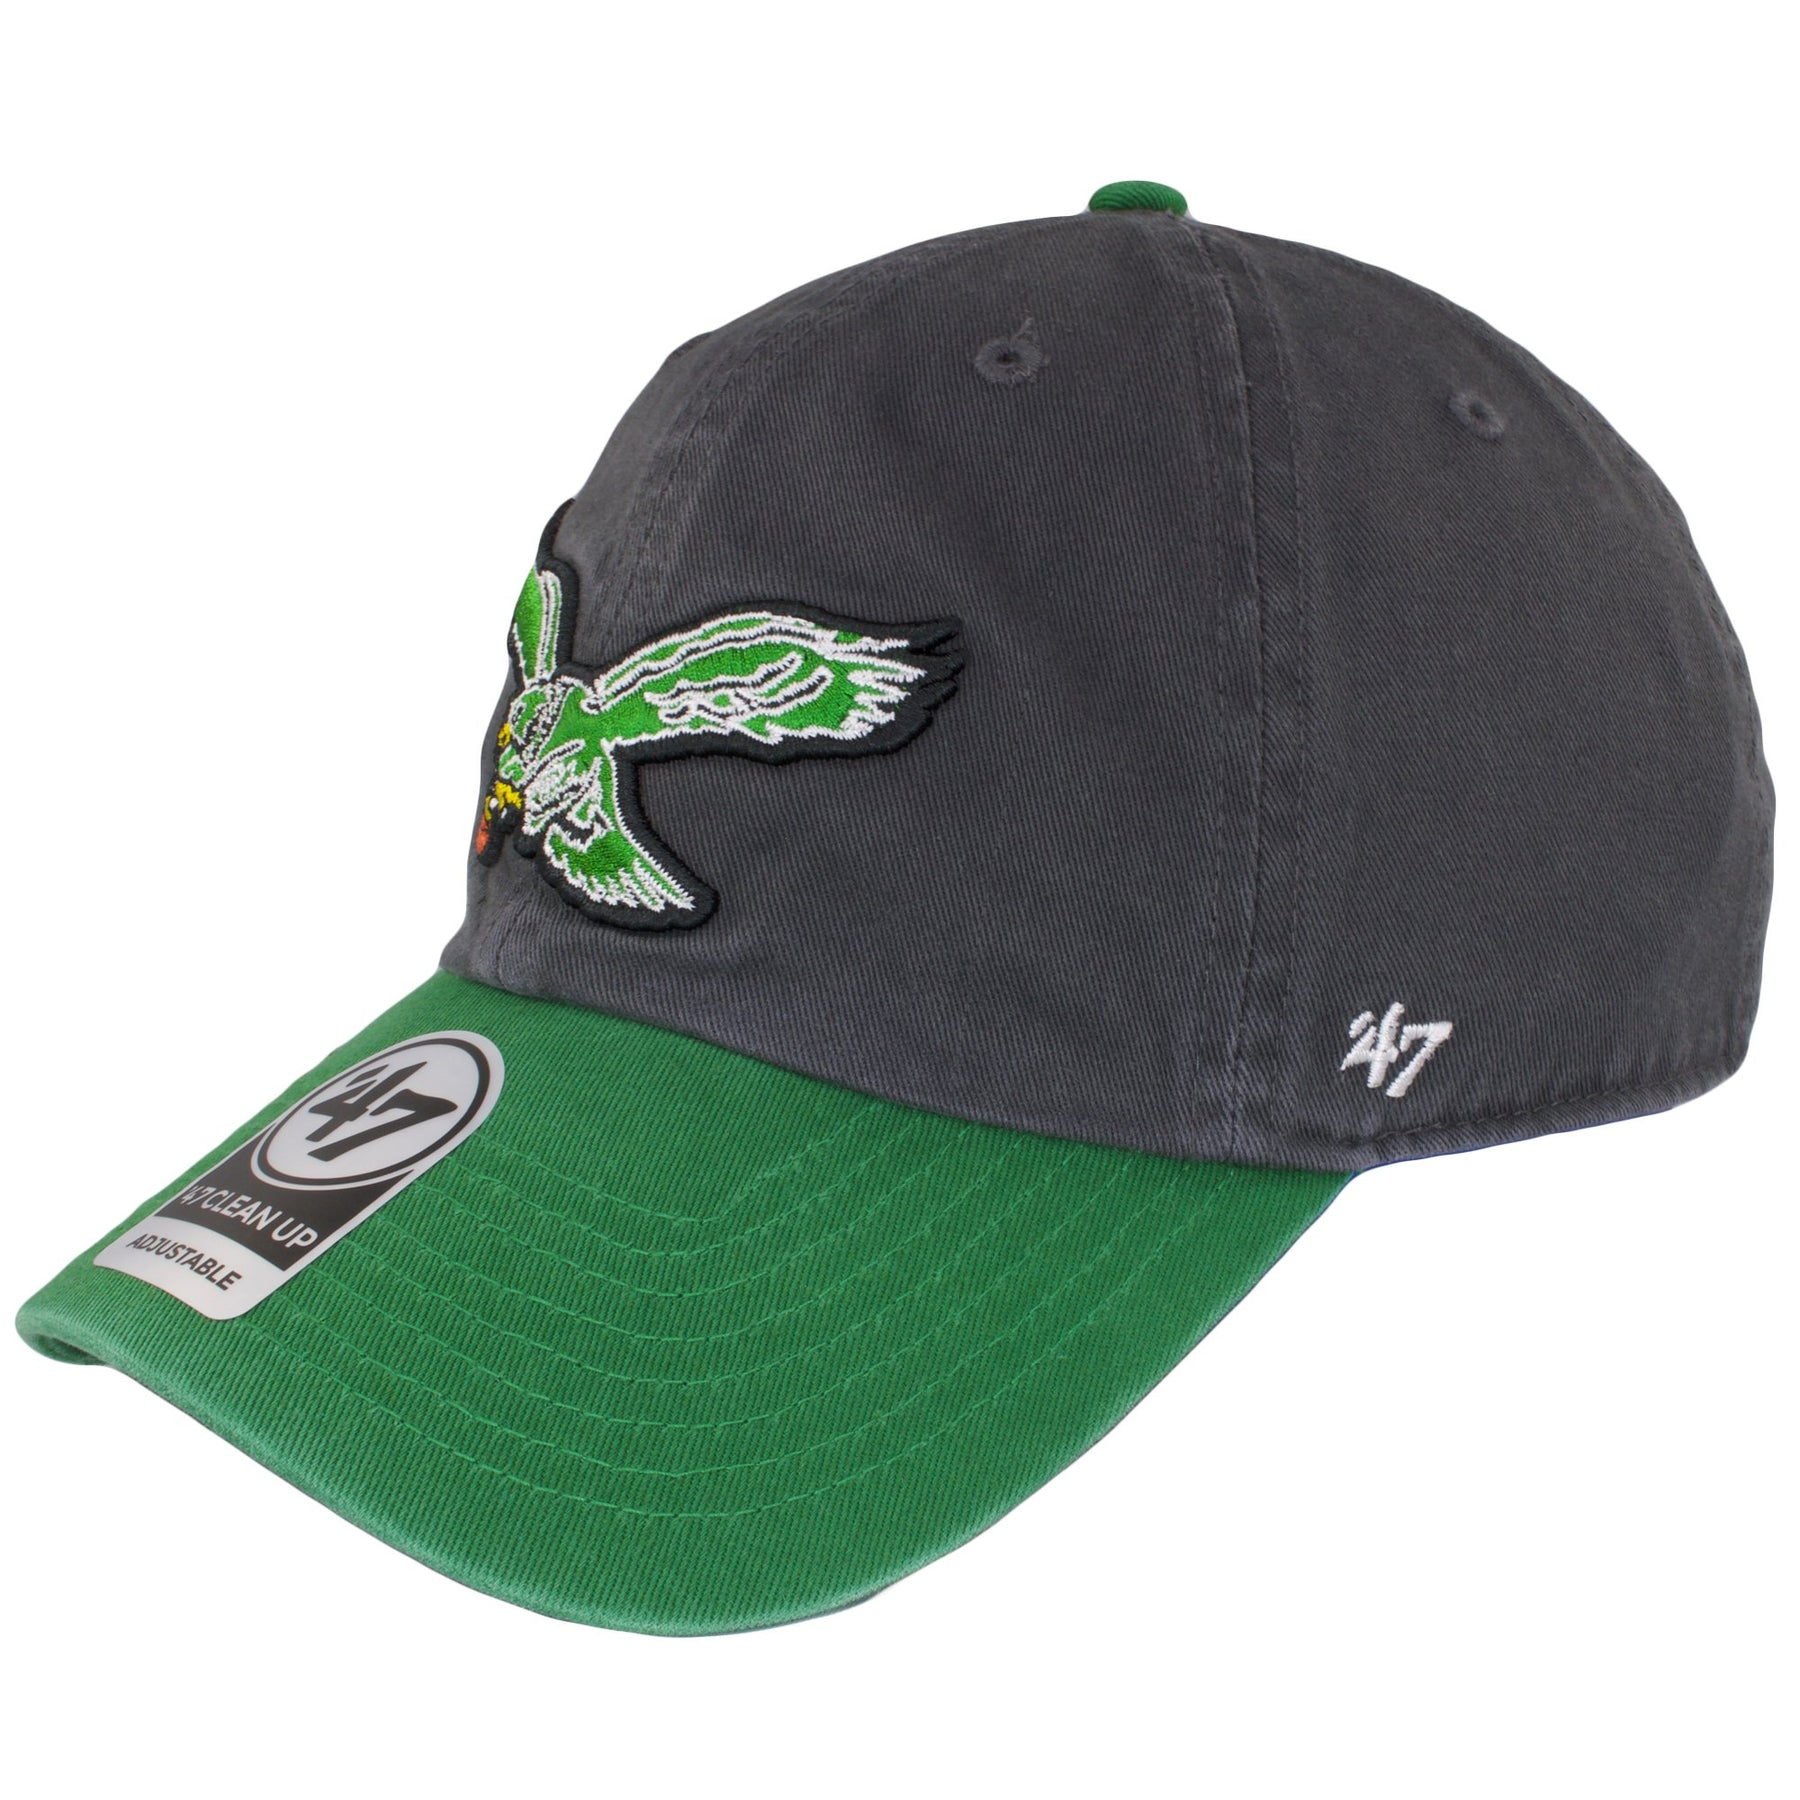 eeac1dddcd334 ... on the left side of the philadelphia eagles retro logo charcoal on kelly  green dad hat ...